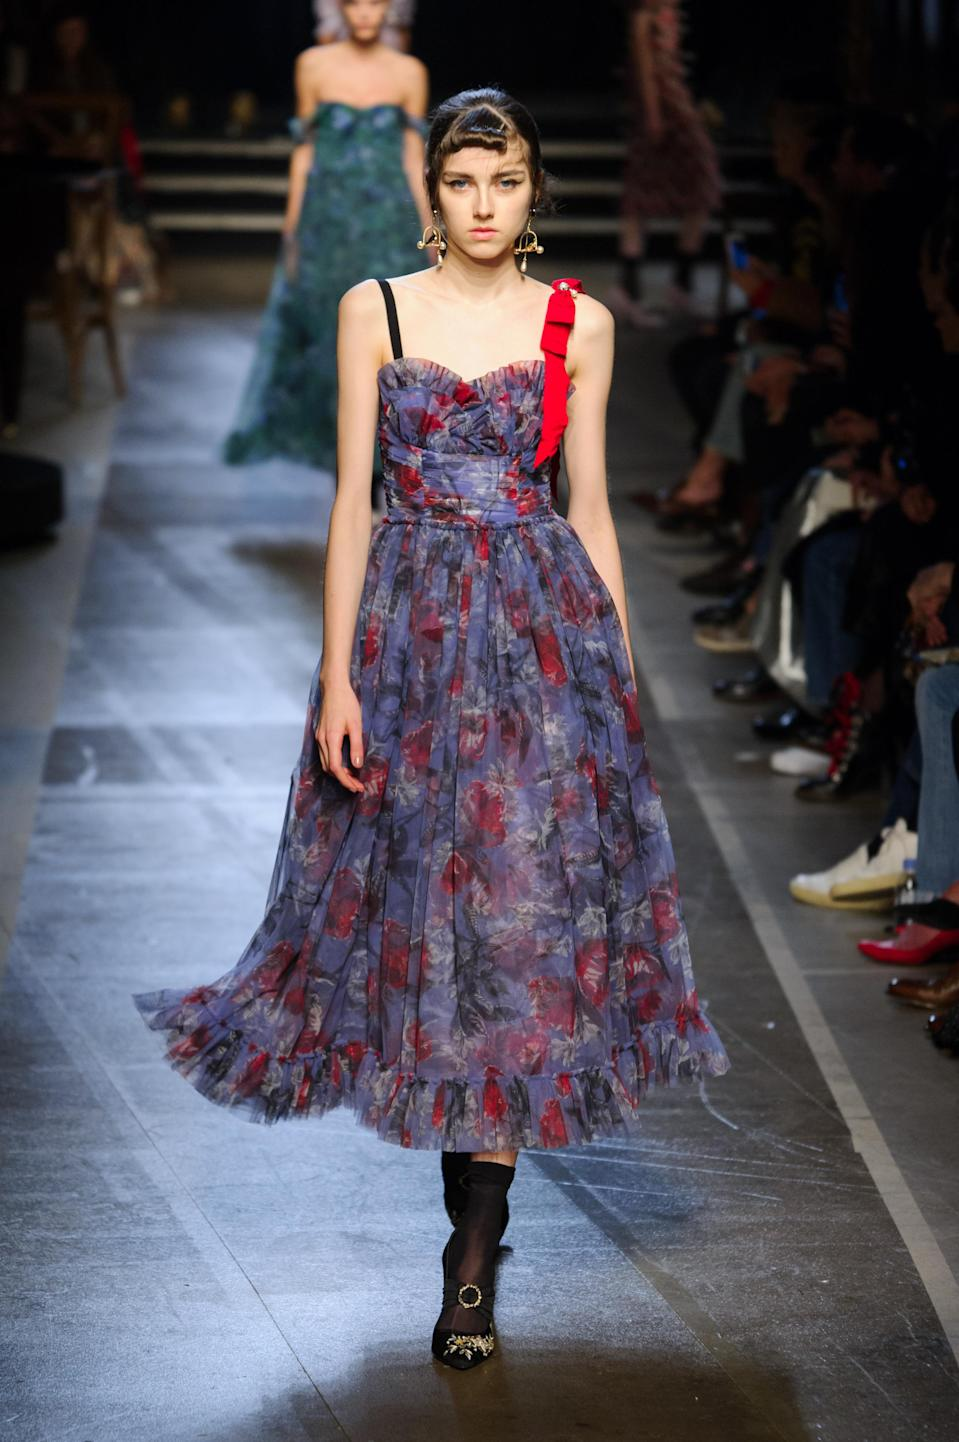 <p><i>A dark purple and red floral-printed dress from the SS18 Erdem collection. (Photo: IMAXtree) </i></p>